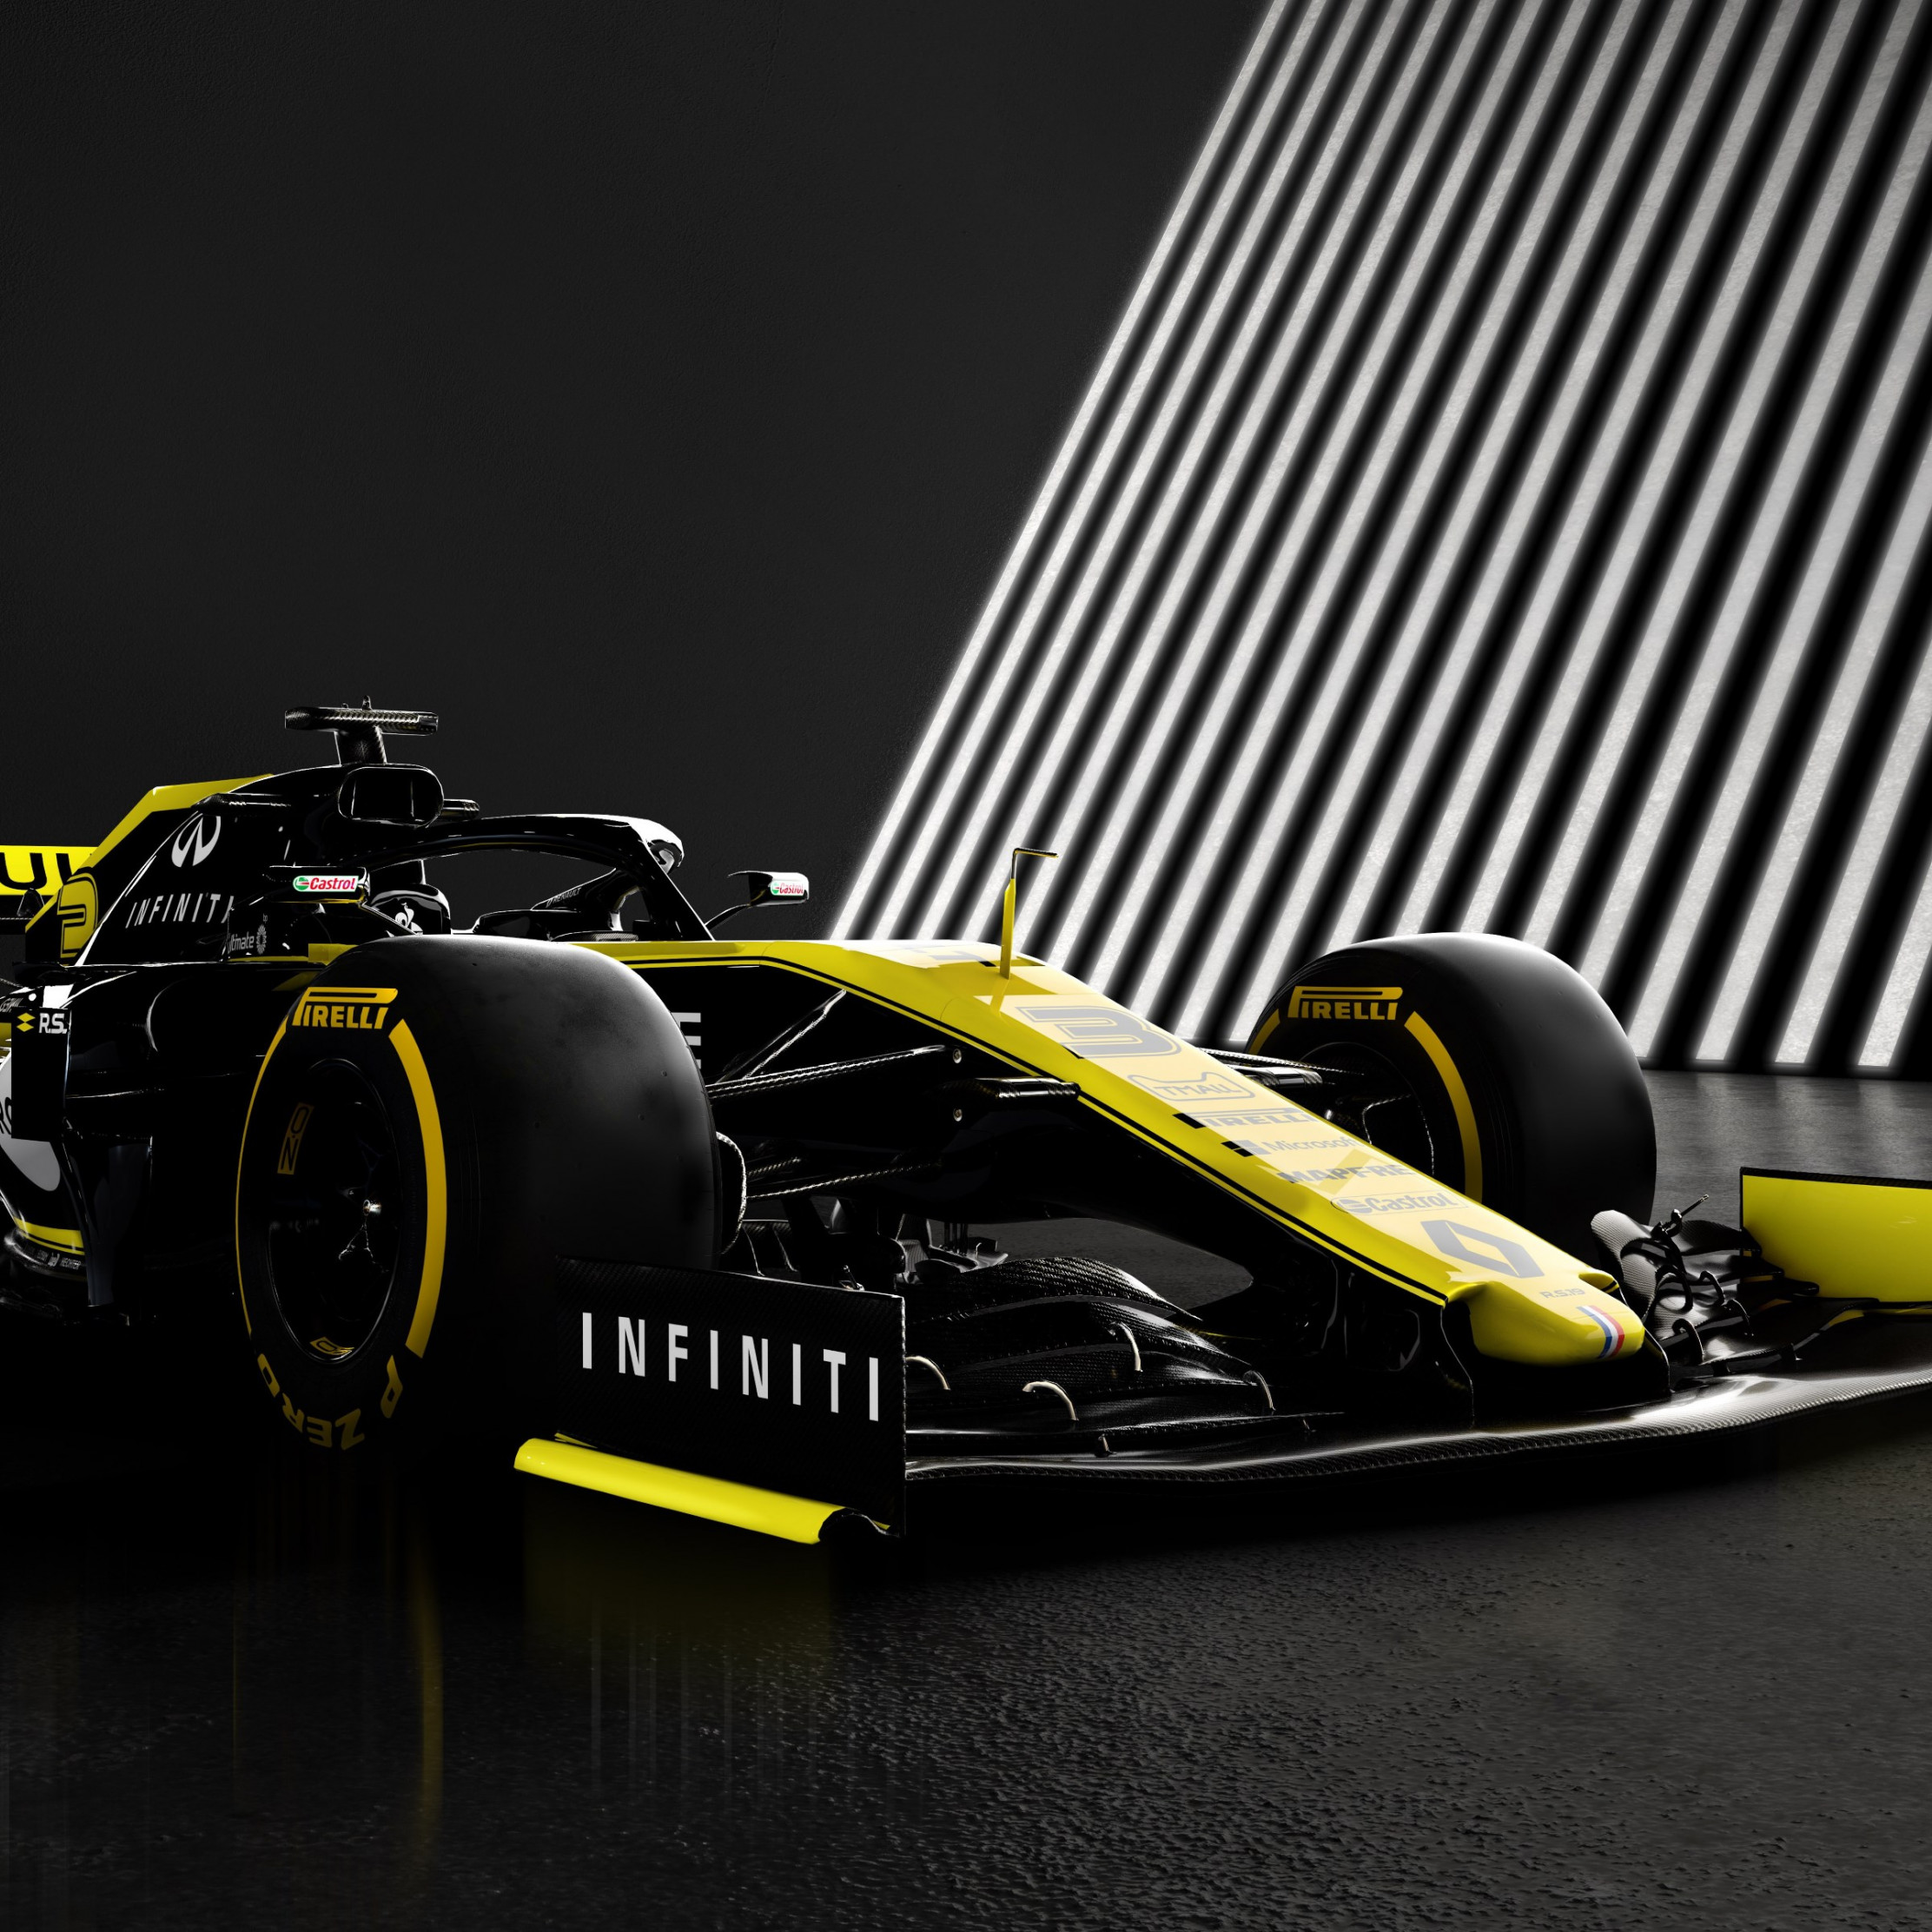 Download wallpaper Renault F1 RS19 2224x2224 2224x2224